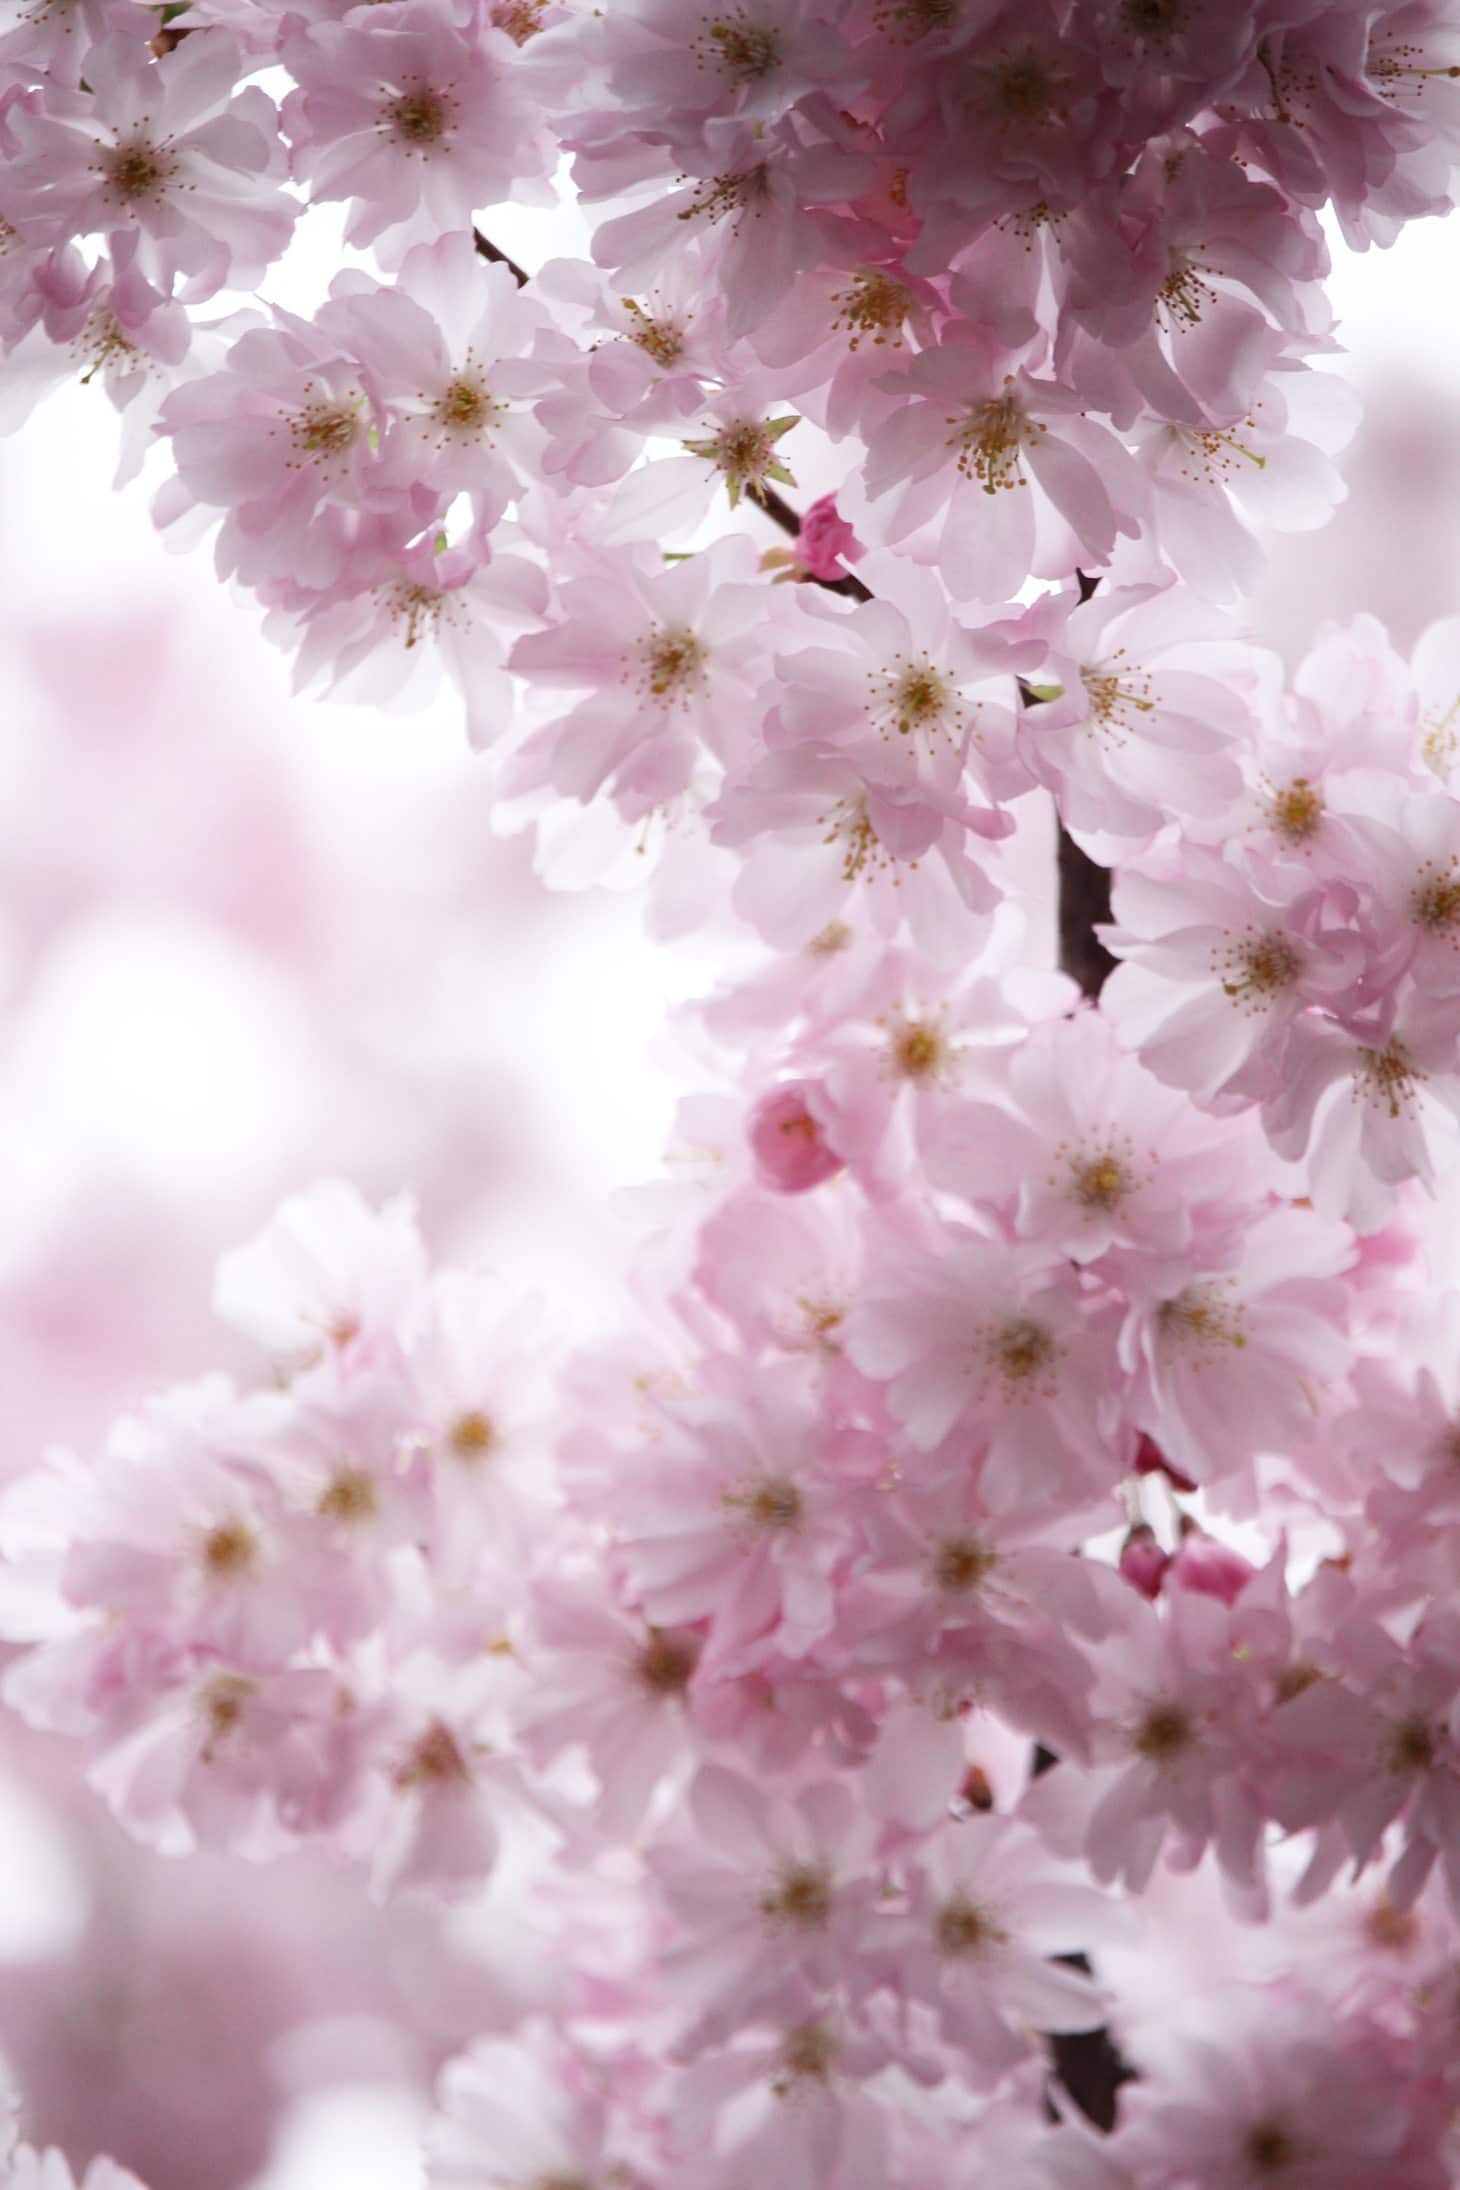 How to photograph bloom, flowering trees, cherry blossom